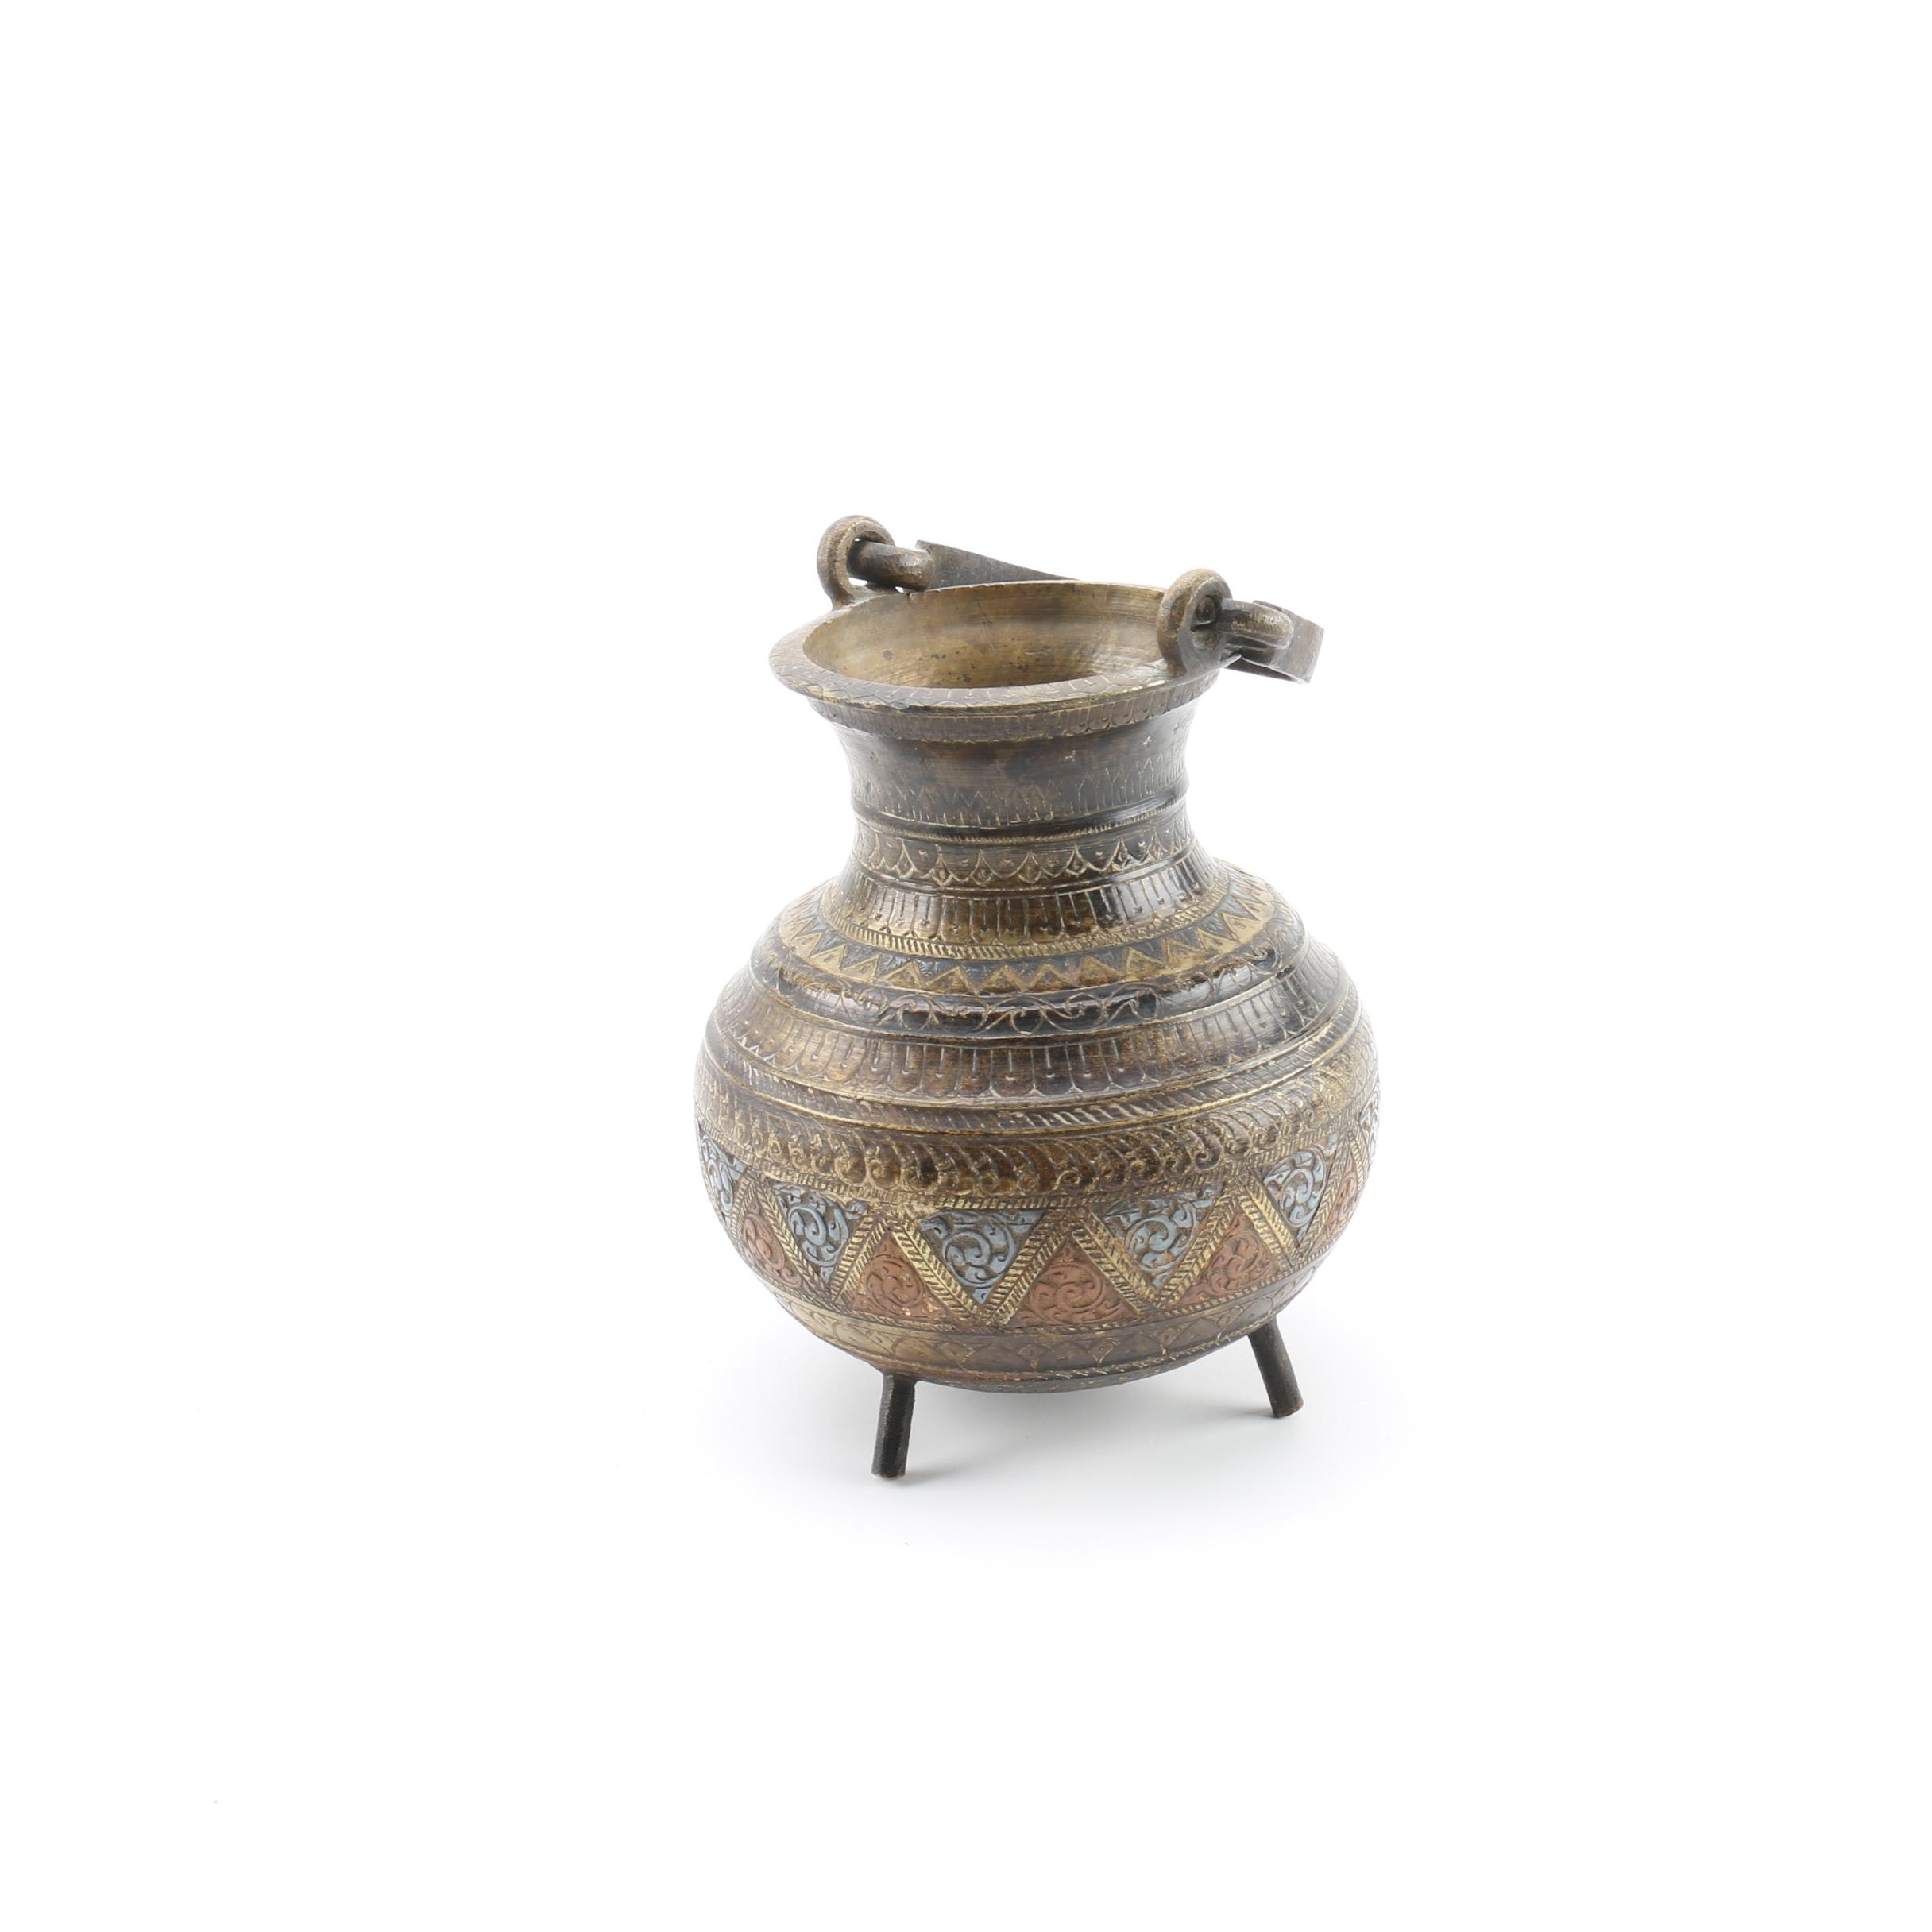 Footed Brass Vase Featuring Incised Geometric Designs